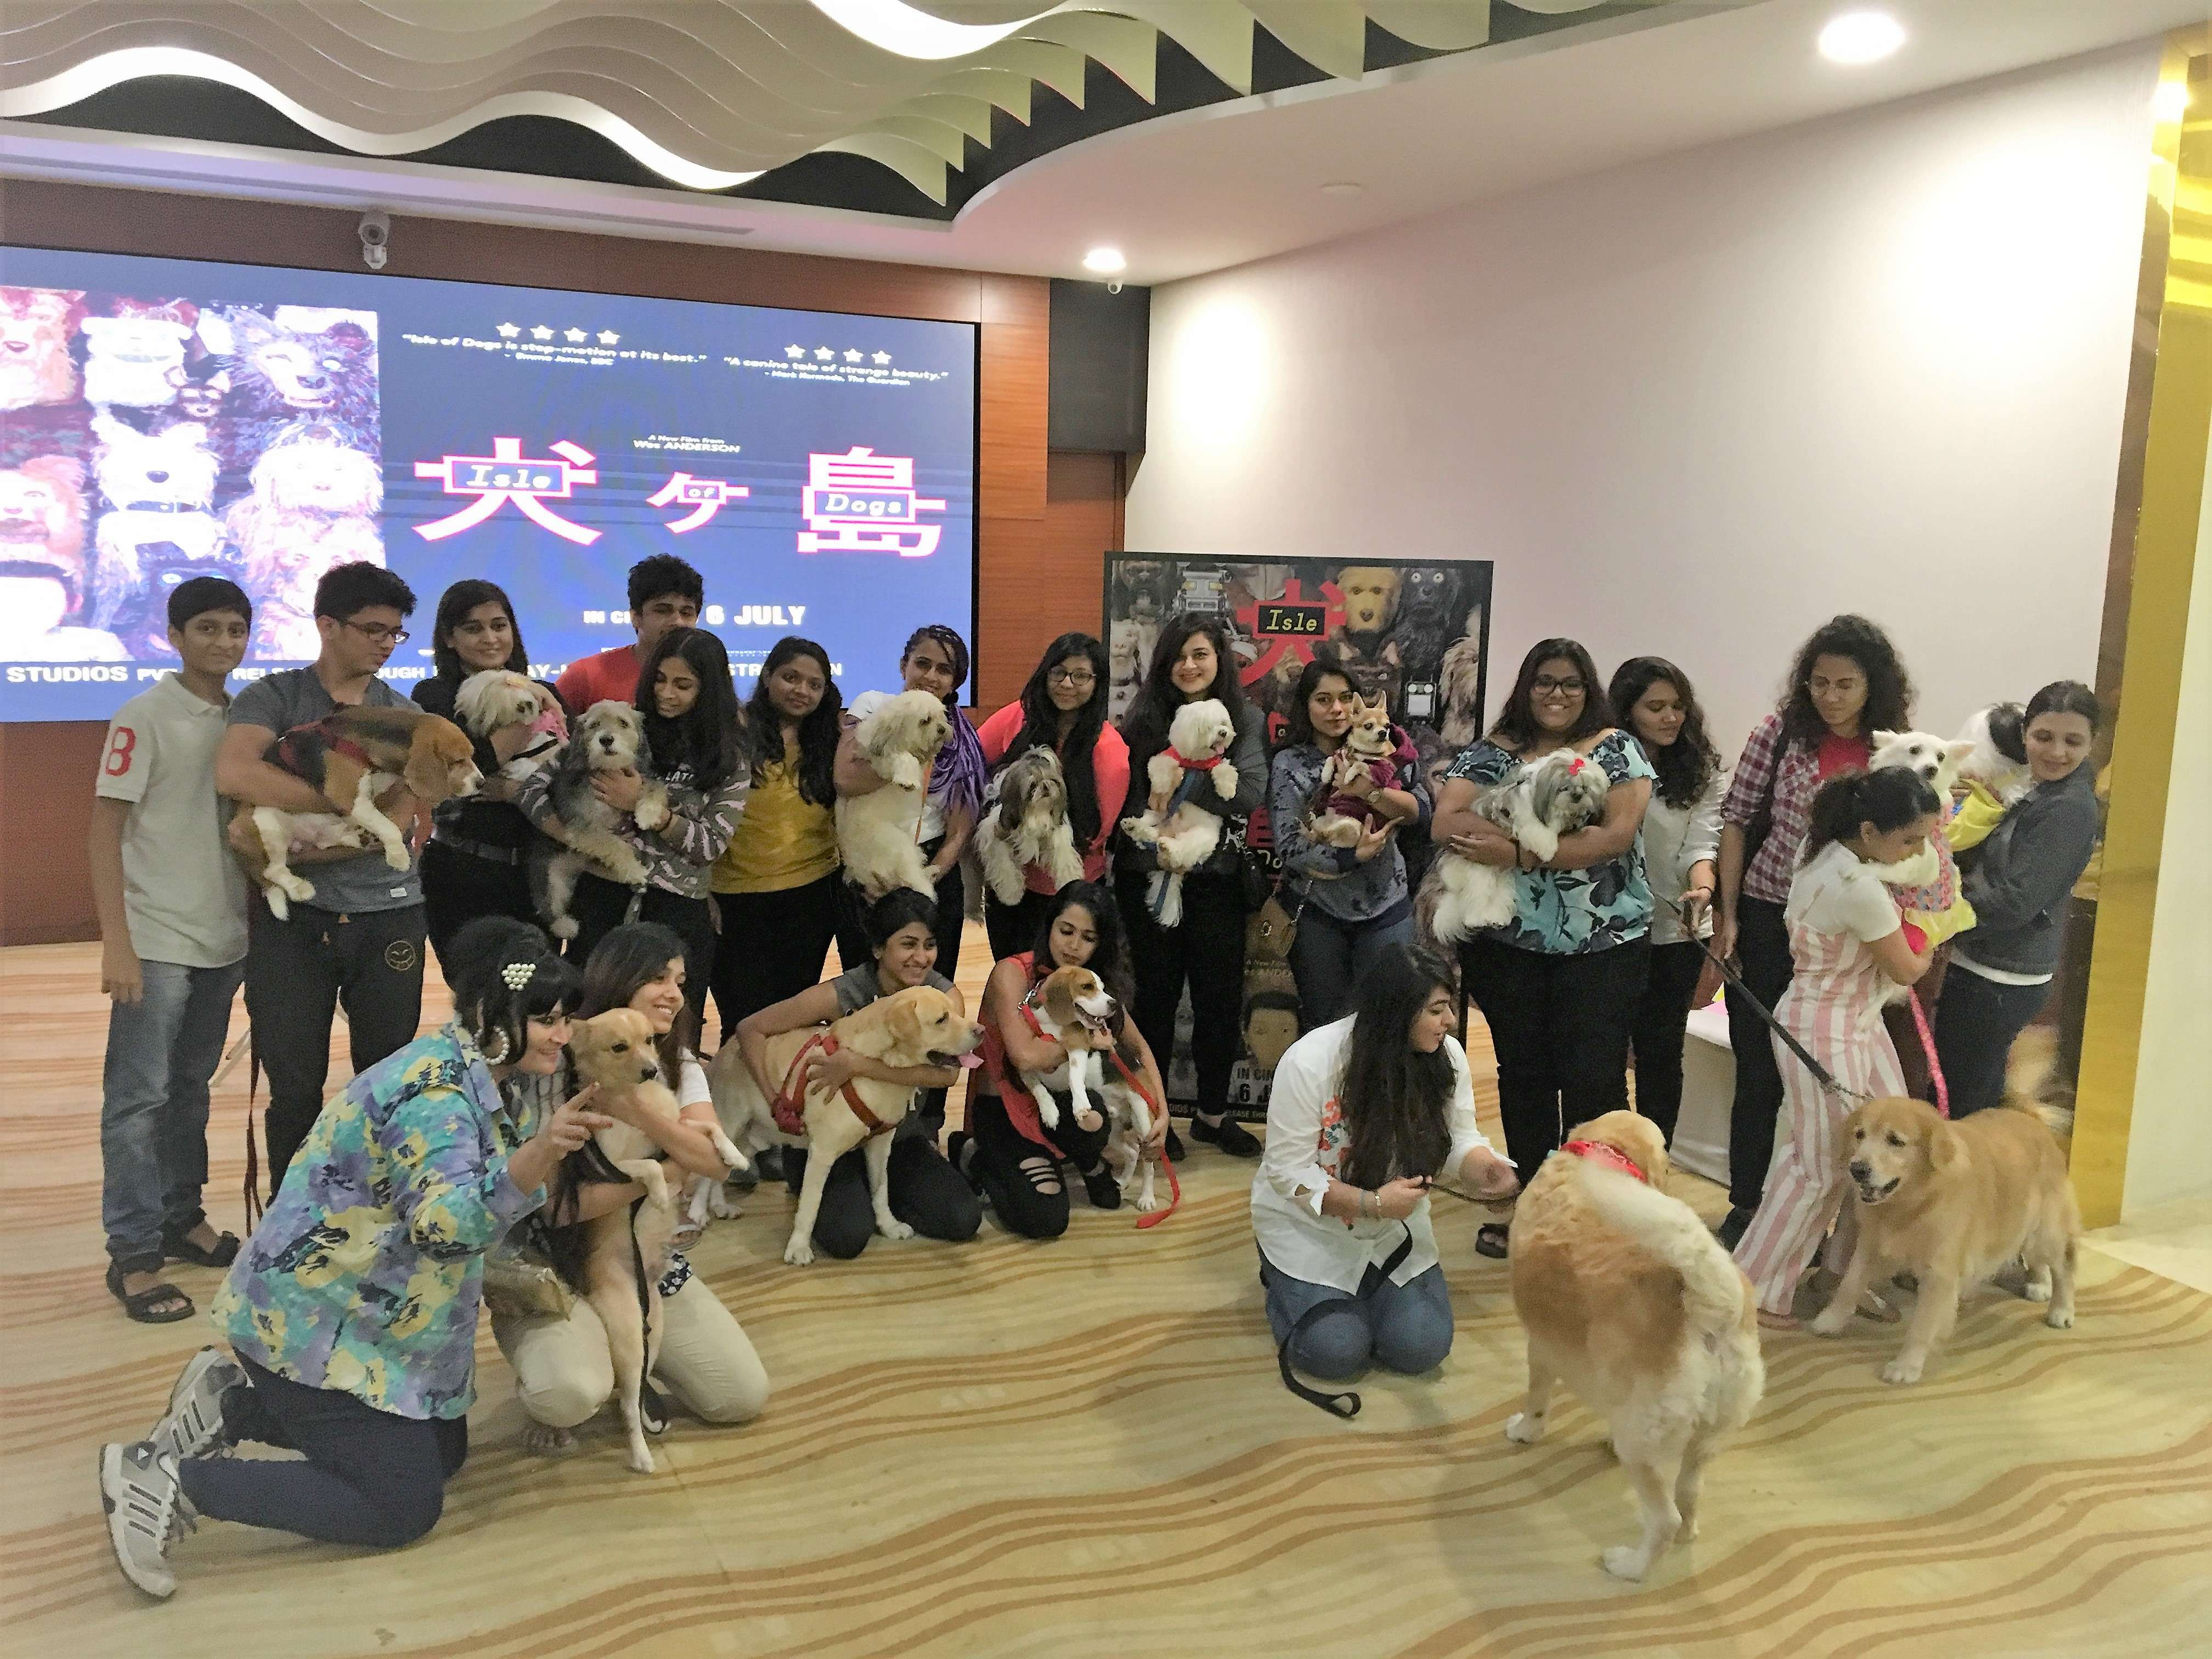 Isle of Dogs host a special screening for Dog lovers.